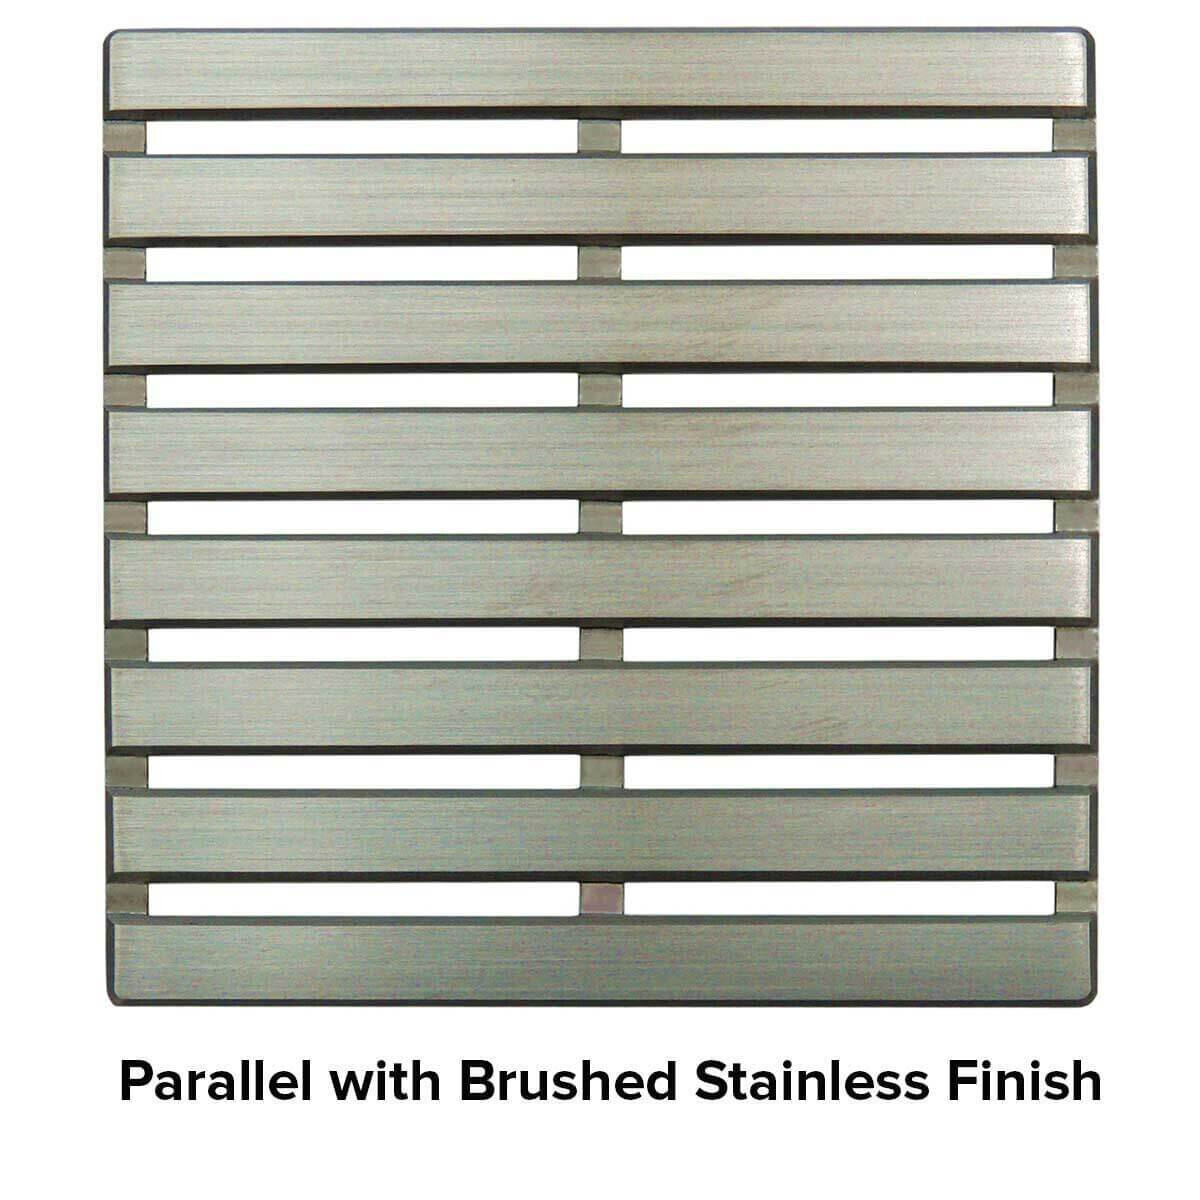 USG 4 inch Shower Grate Brushed SS Parallel